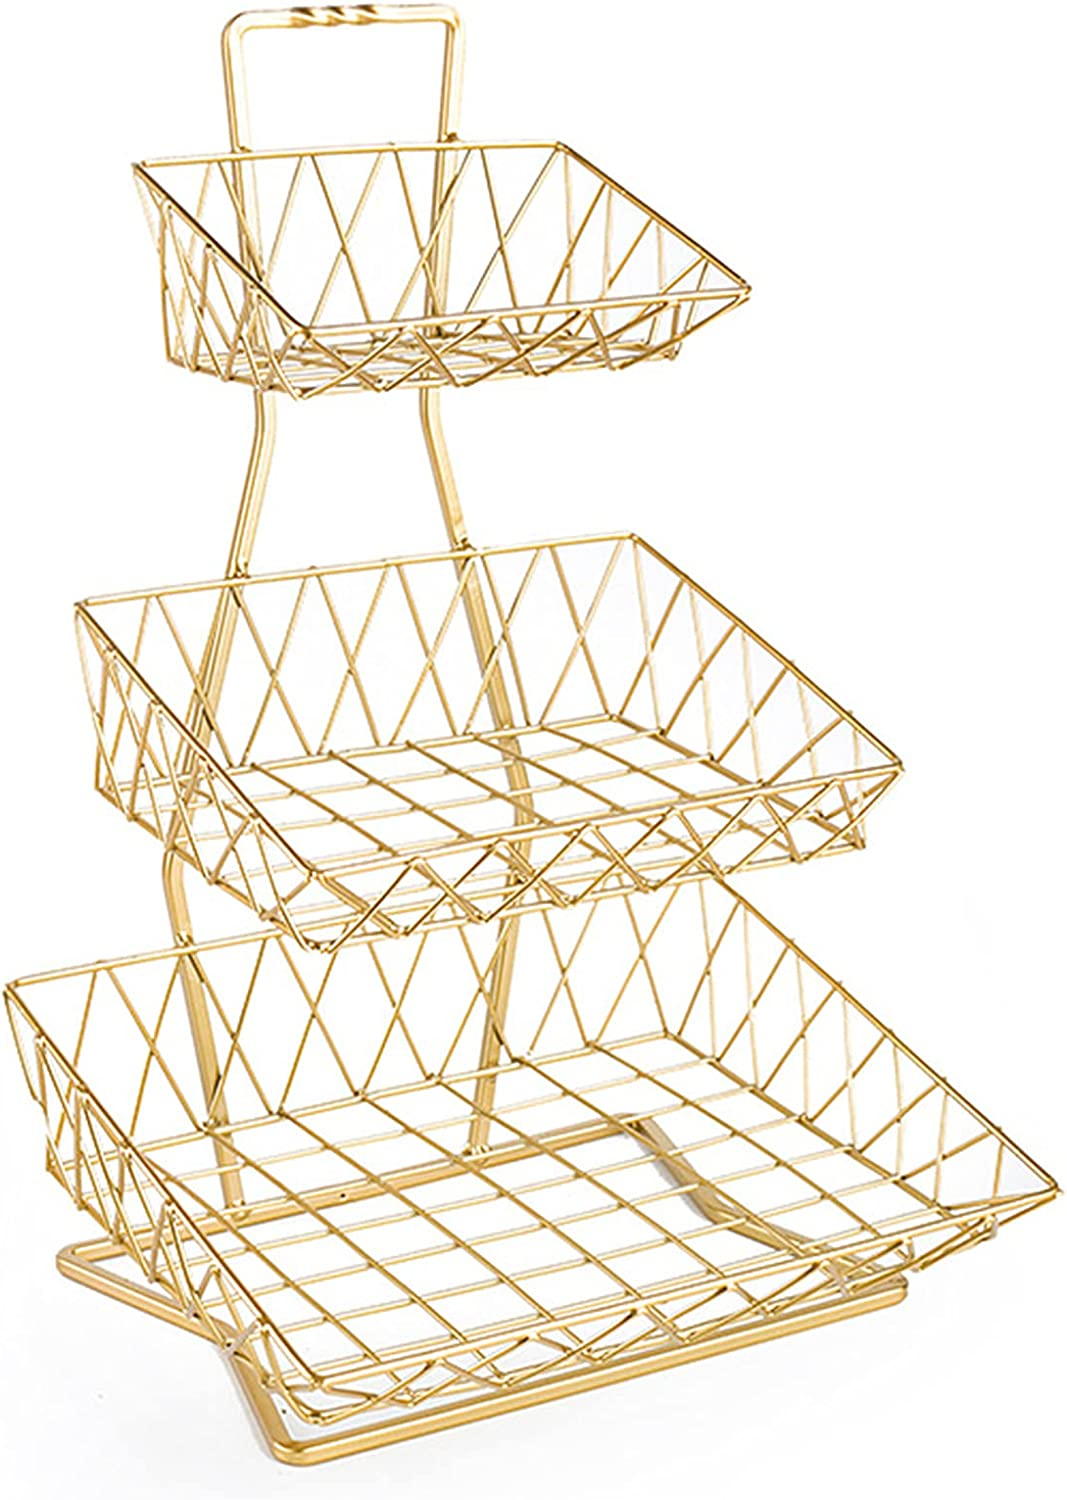 JZDHAOANHE Multi-Layered Fruit Basket for Counterto Limited free time sale Stand